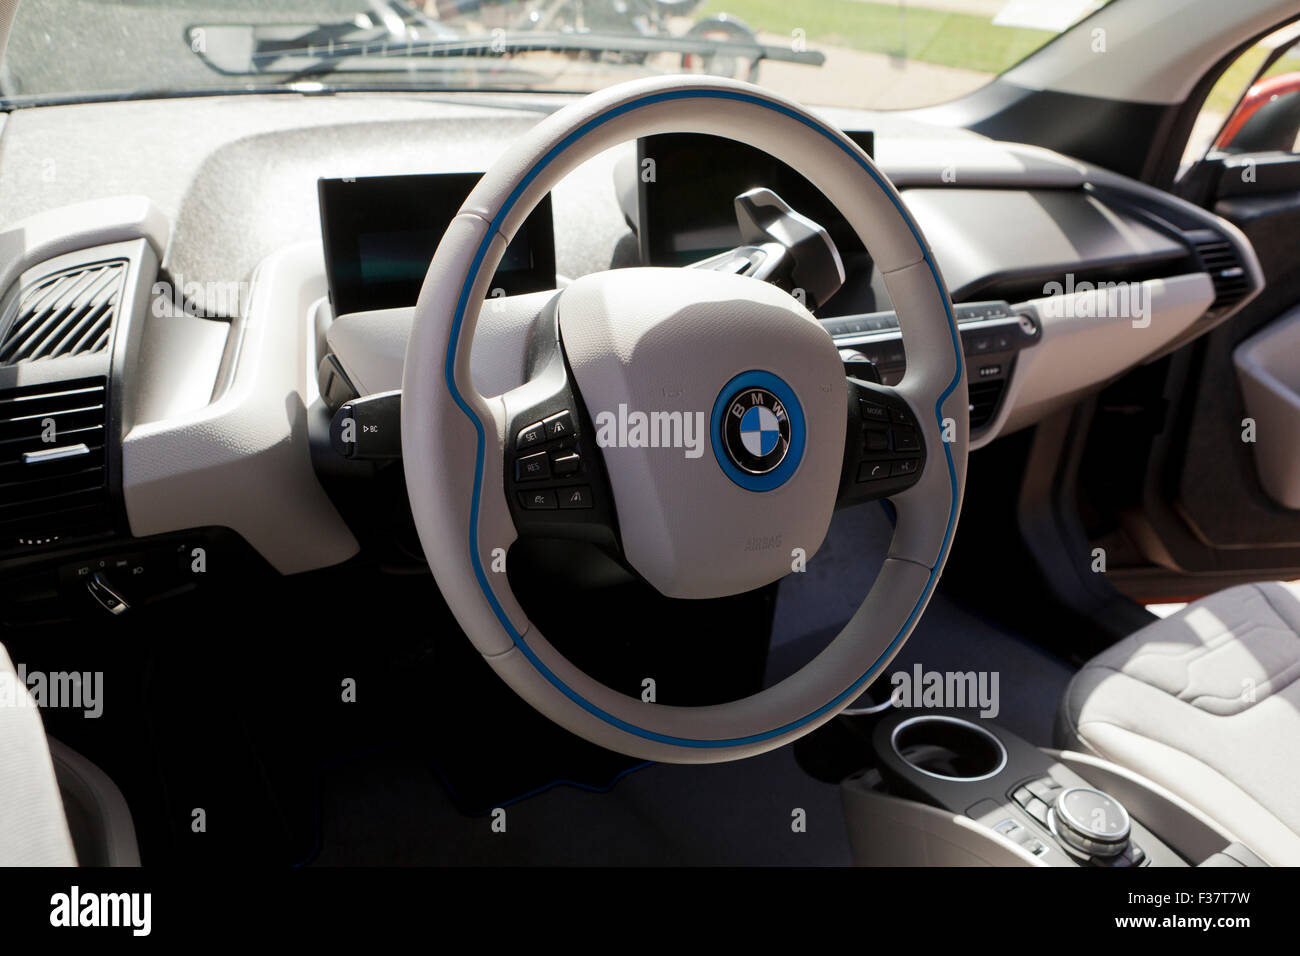 bmw i3 electric car interior usa stock photo royalty free image 88068509 alamy. Black Bedroom Furniture Sets. Home Design Ideas